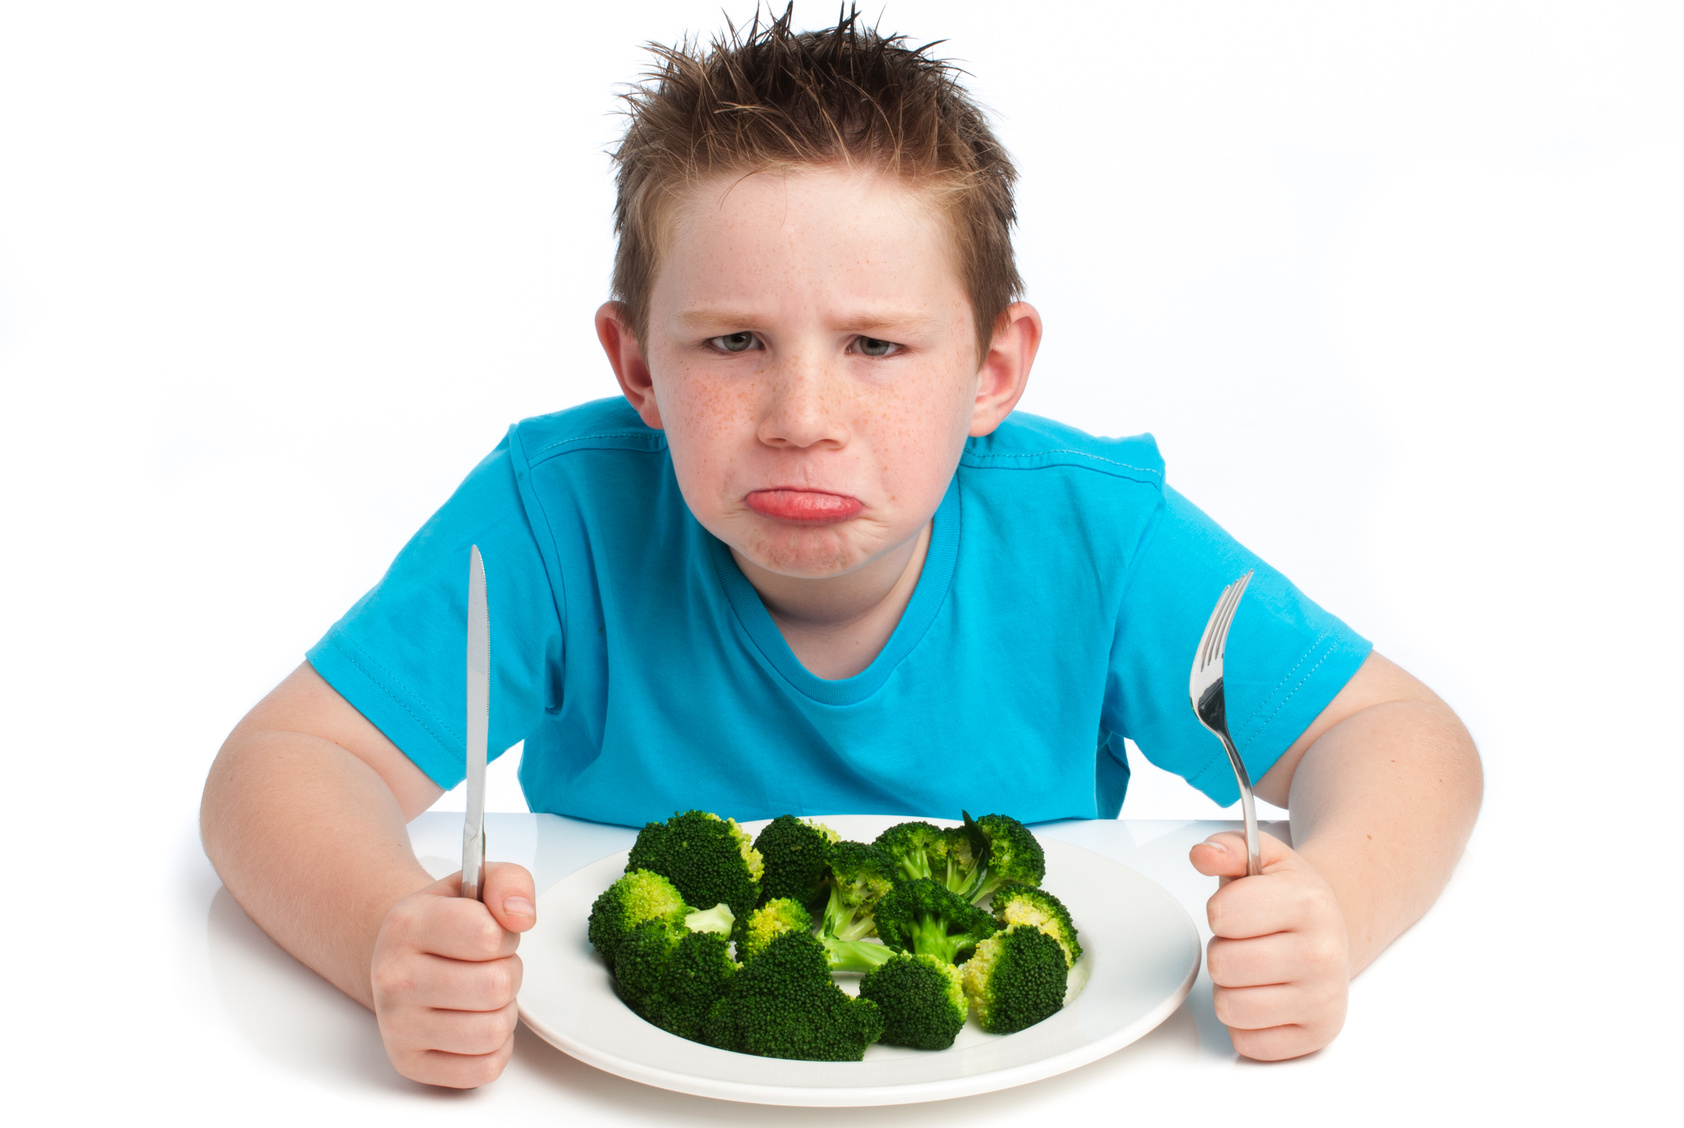 A young boy who is not happy about eating his broccoli.